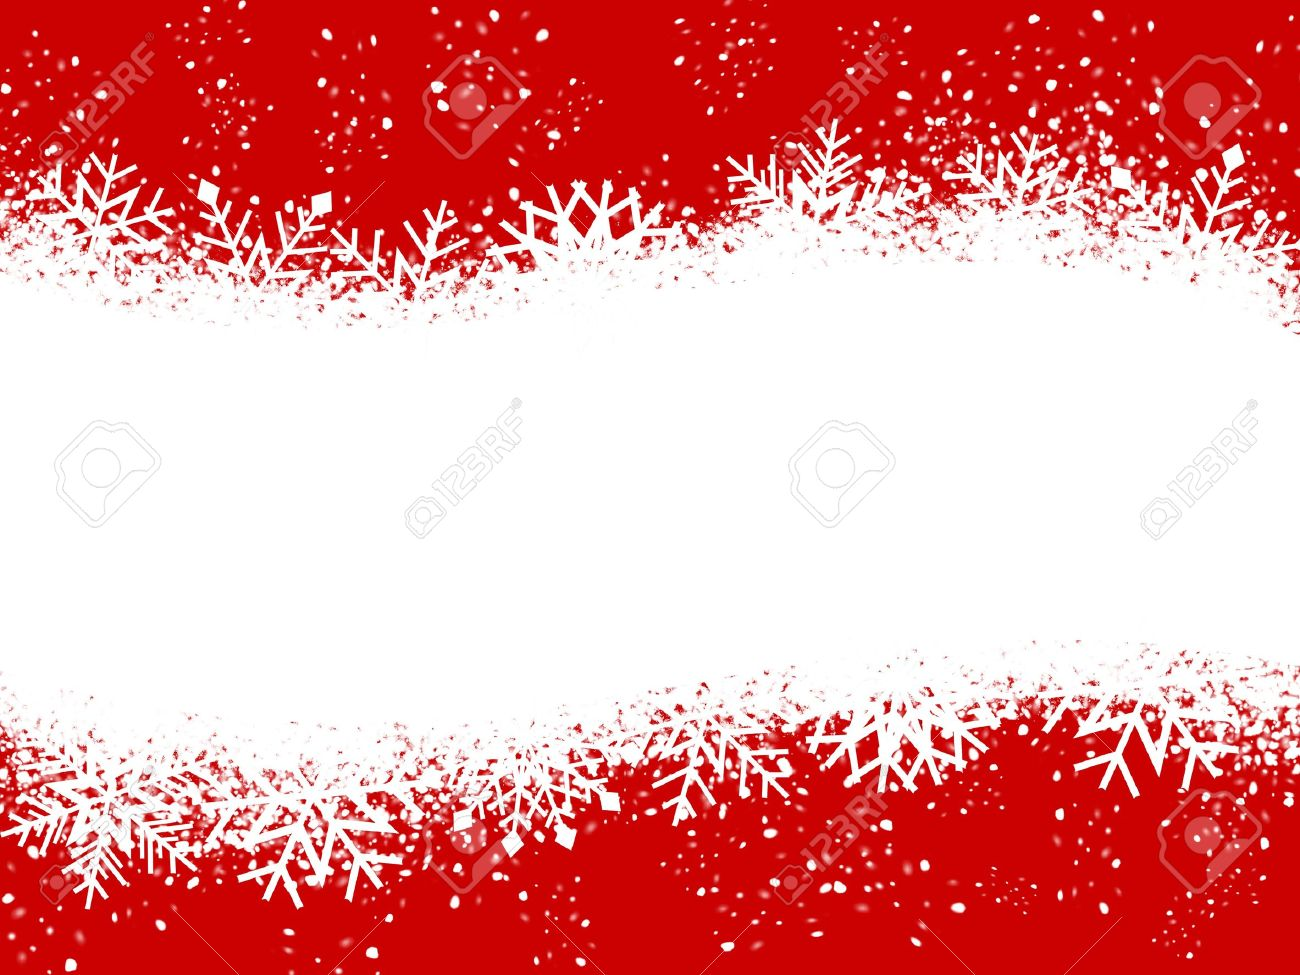 Red And White Christmas Card Stock Photo, Picture And Royalty Free ...